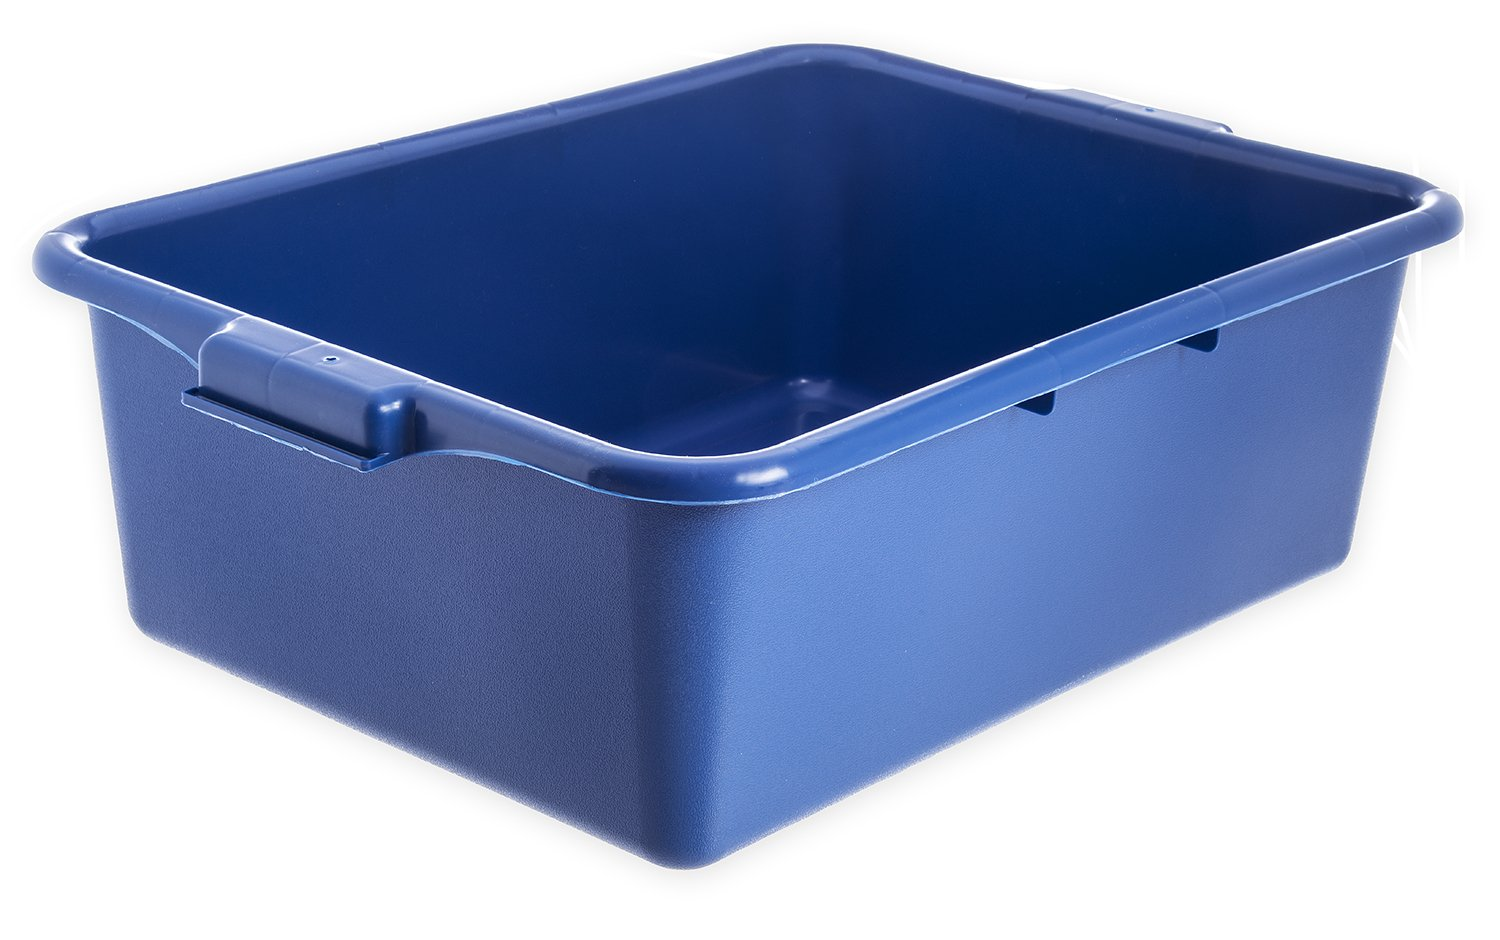 Carlisle N4401114 Comfort Curve Bus Box/Tote Box, 7'' High, Blue - 1 Each